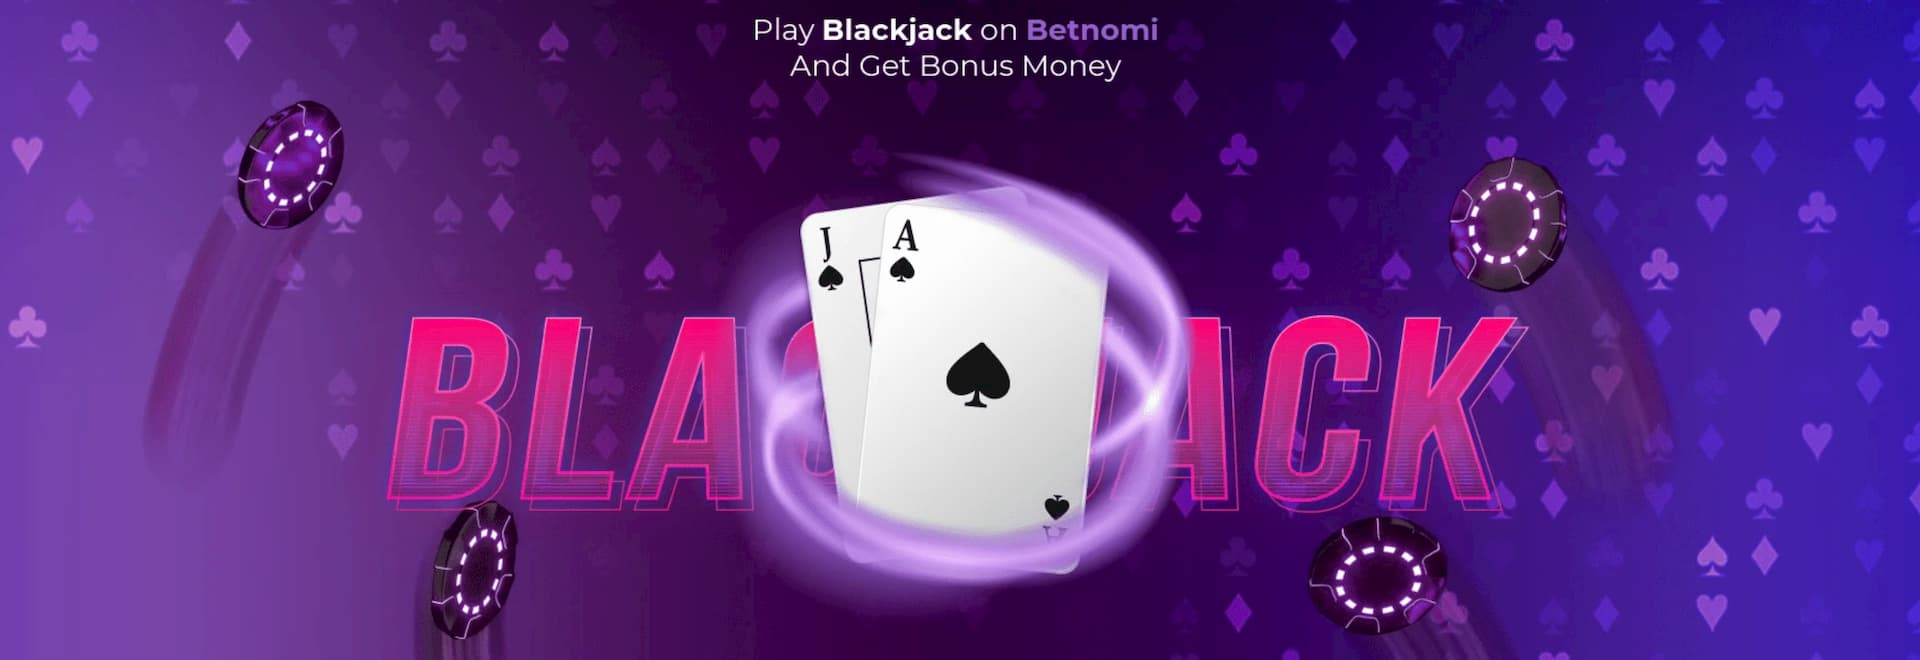 Betnomi Blackjack